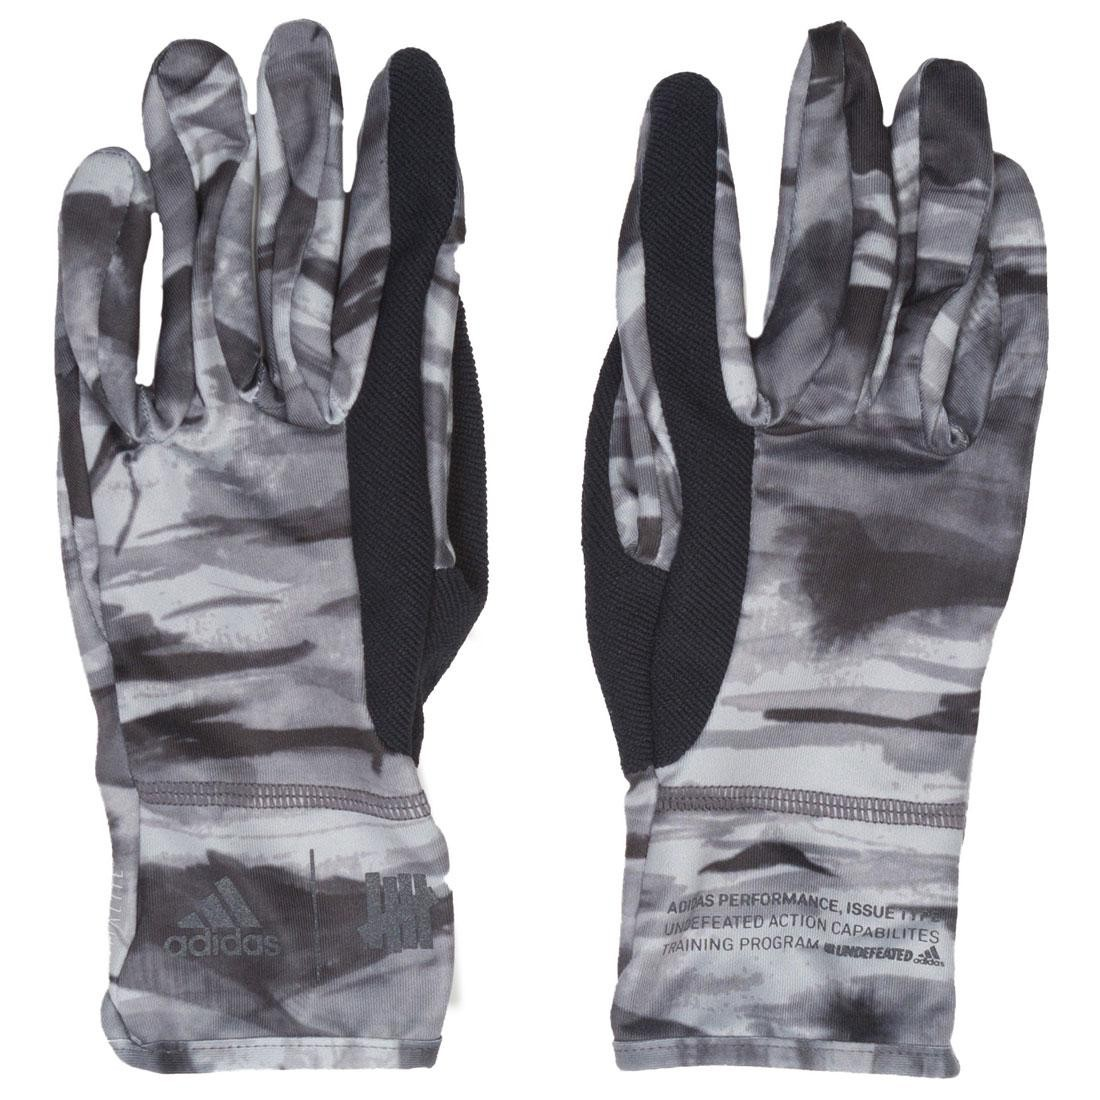 Adidas x Undefeated Running Gloves (black / reflective utility black / shift gray)